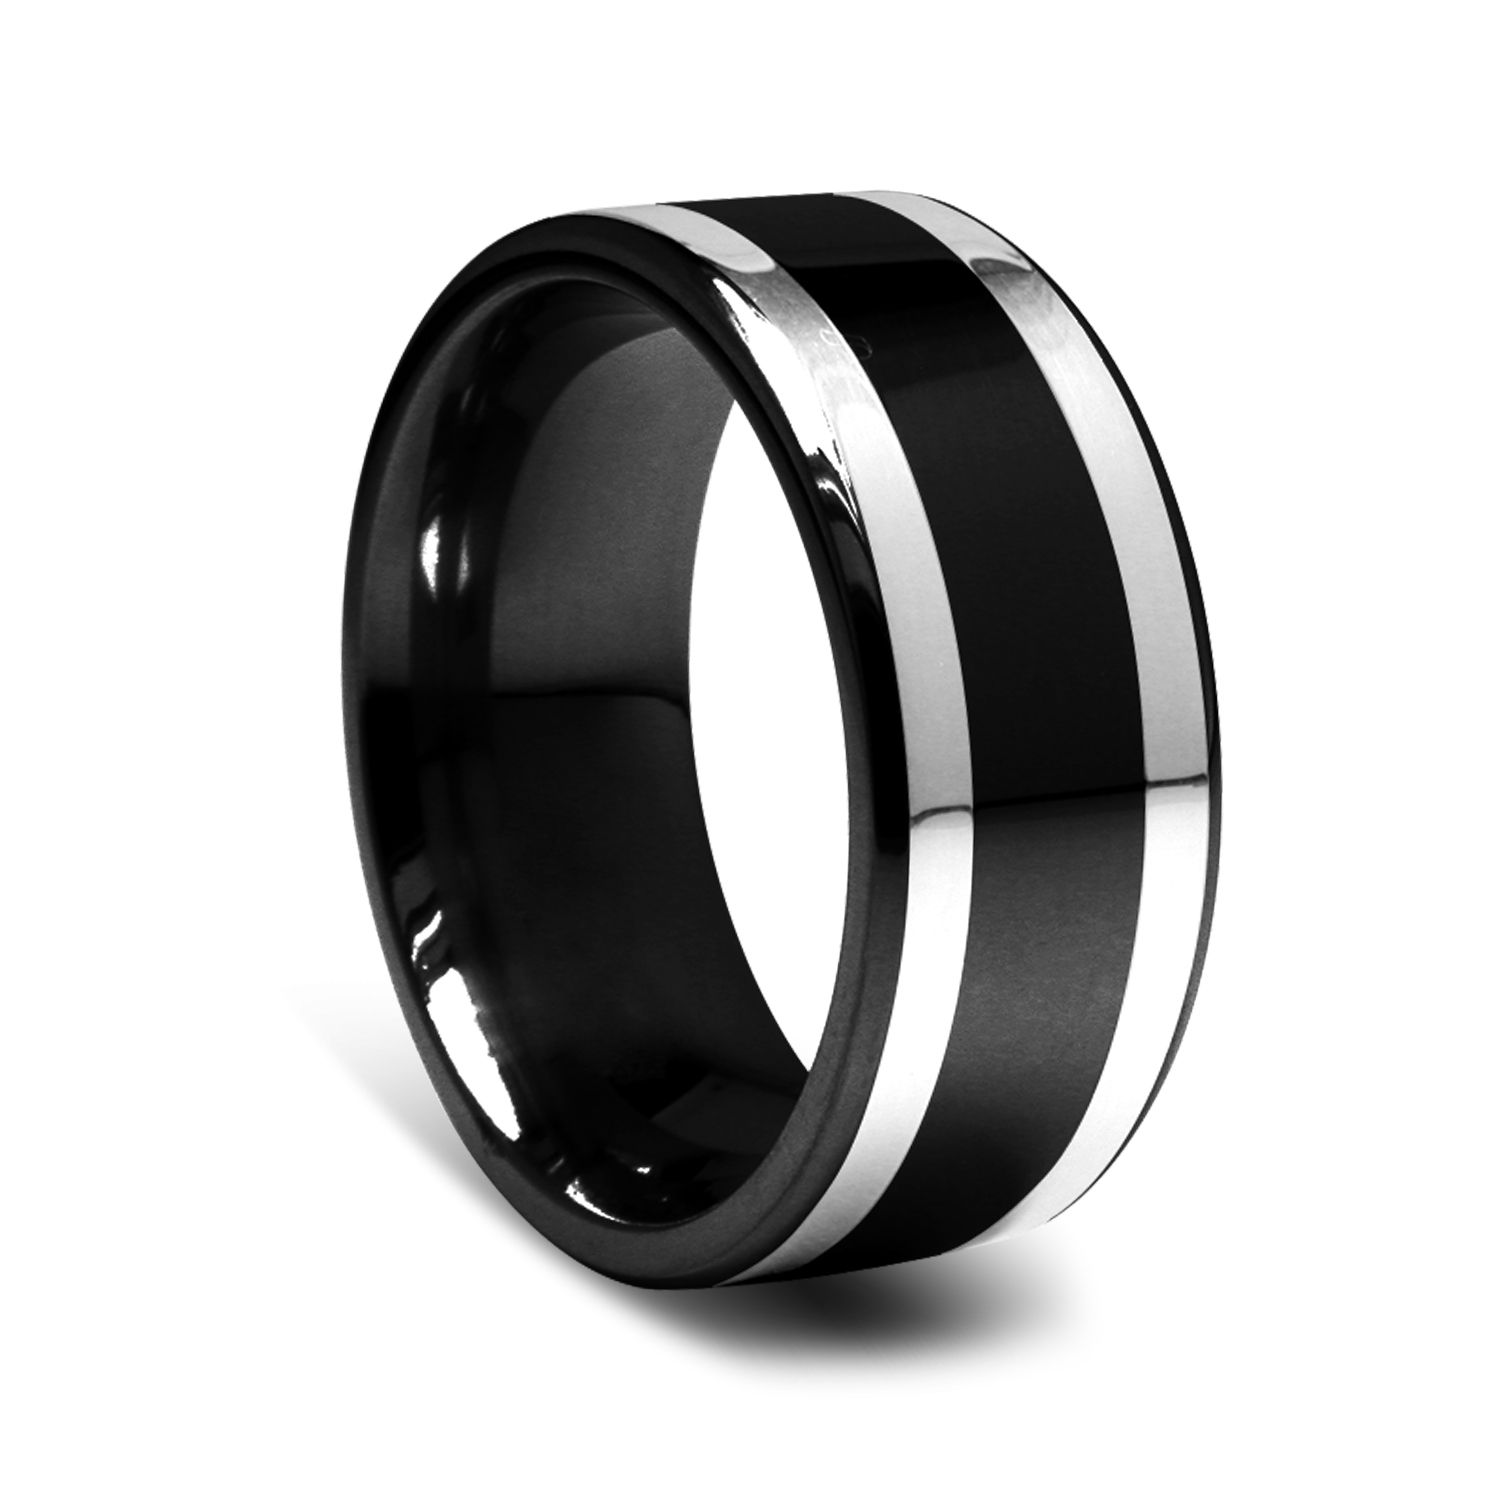 9mm Black Titanium Mens Ring with Silver Inlay A great look